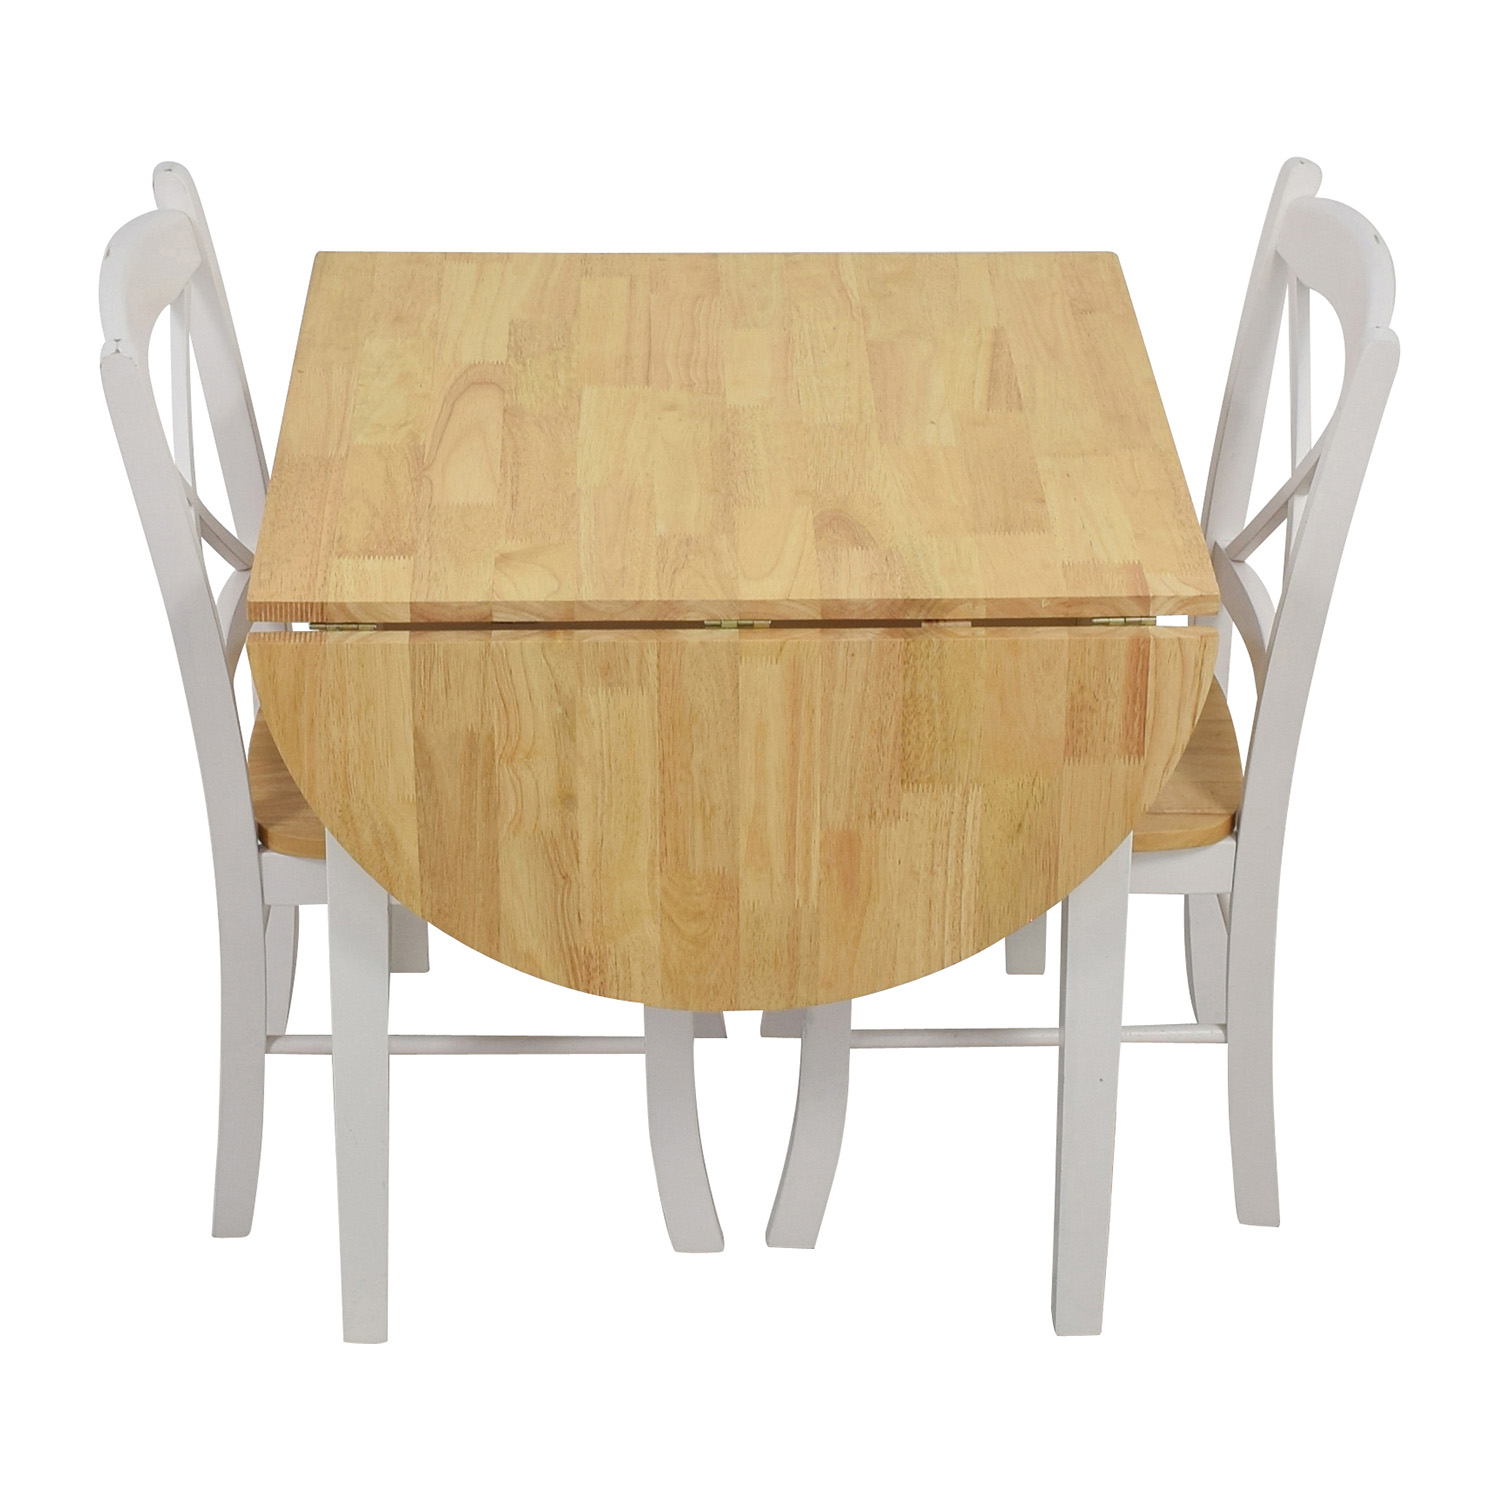 buy Simple Living Simple Living Country Cottage 3-piece Dining Set online